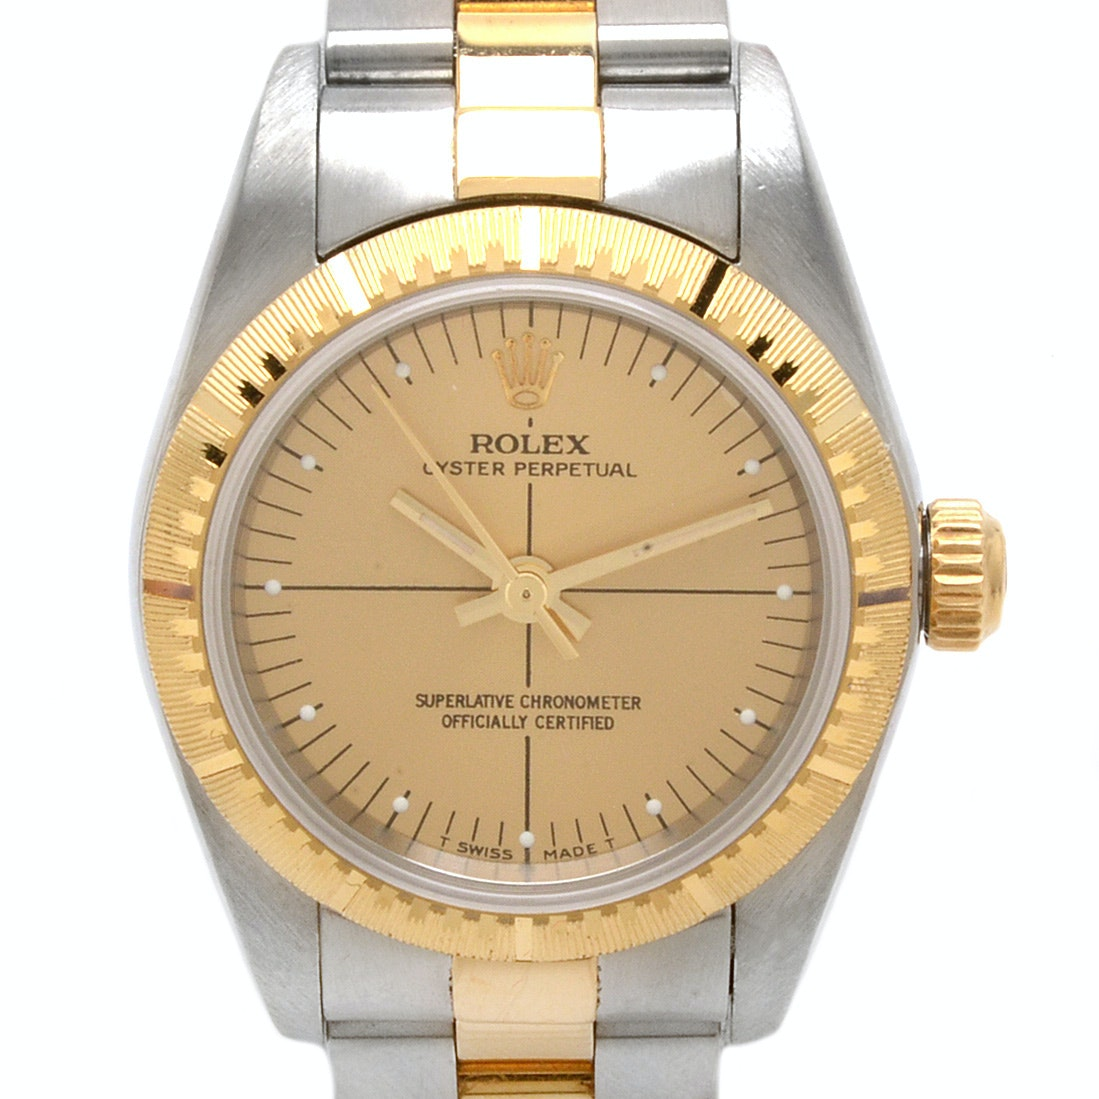 Rolex Oyster Perpetual 18K Gold and Stainless Steel Automatic Wristwatch